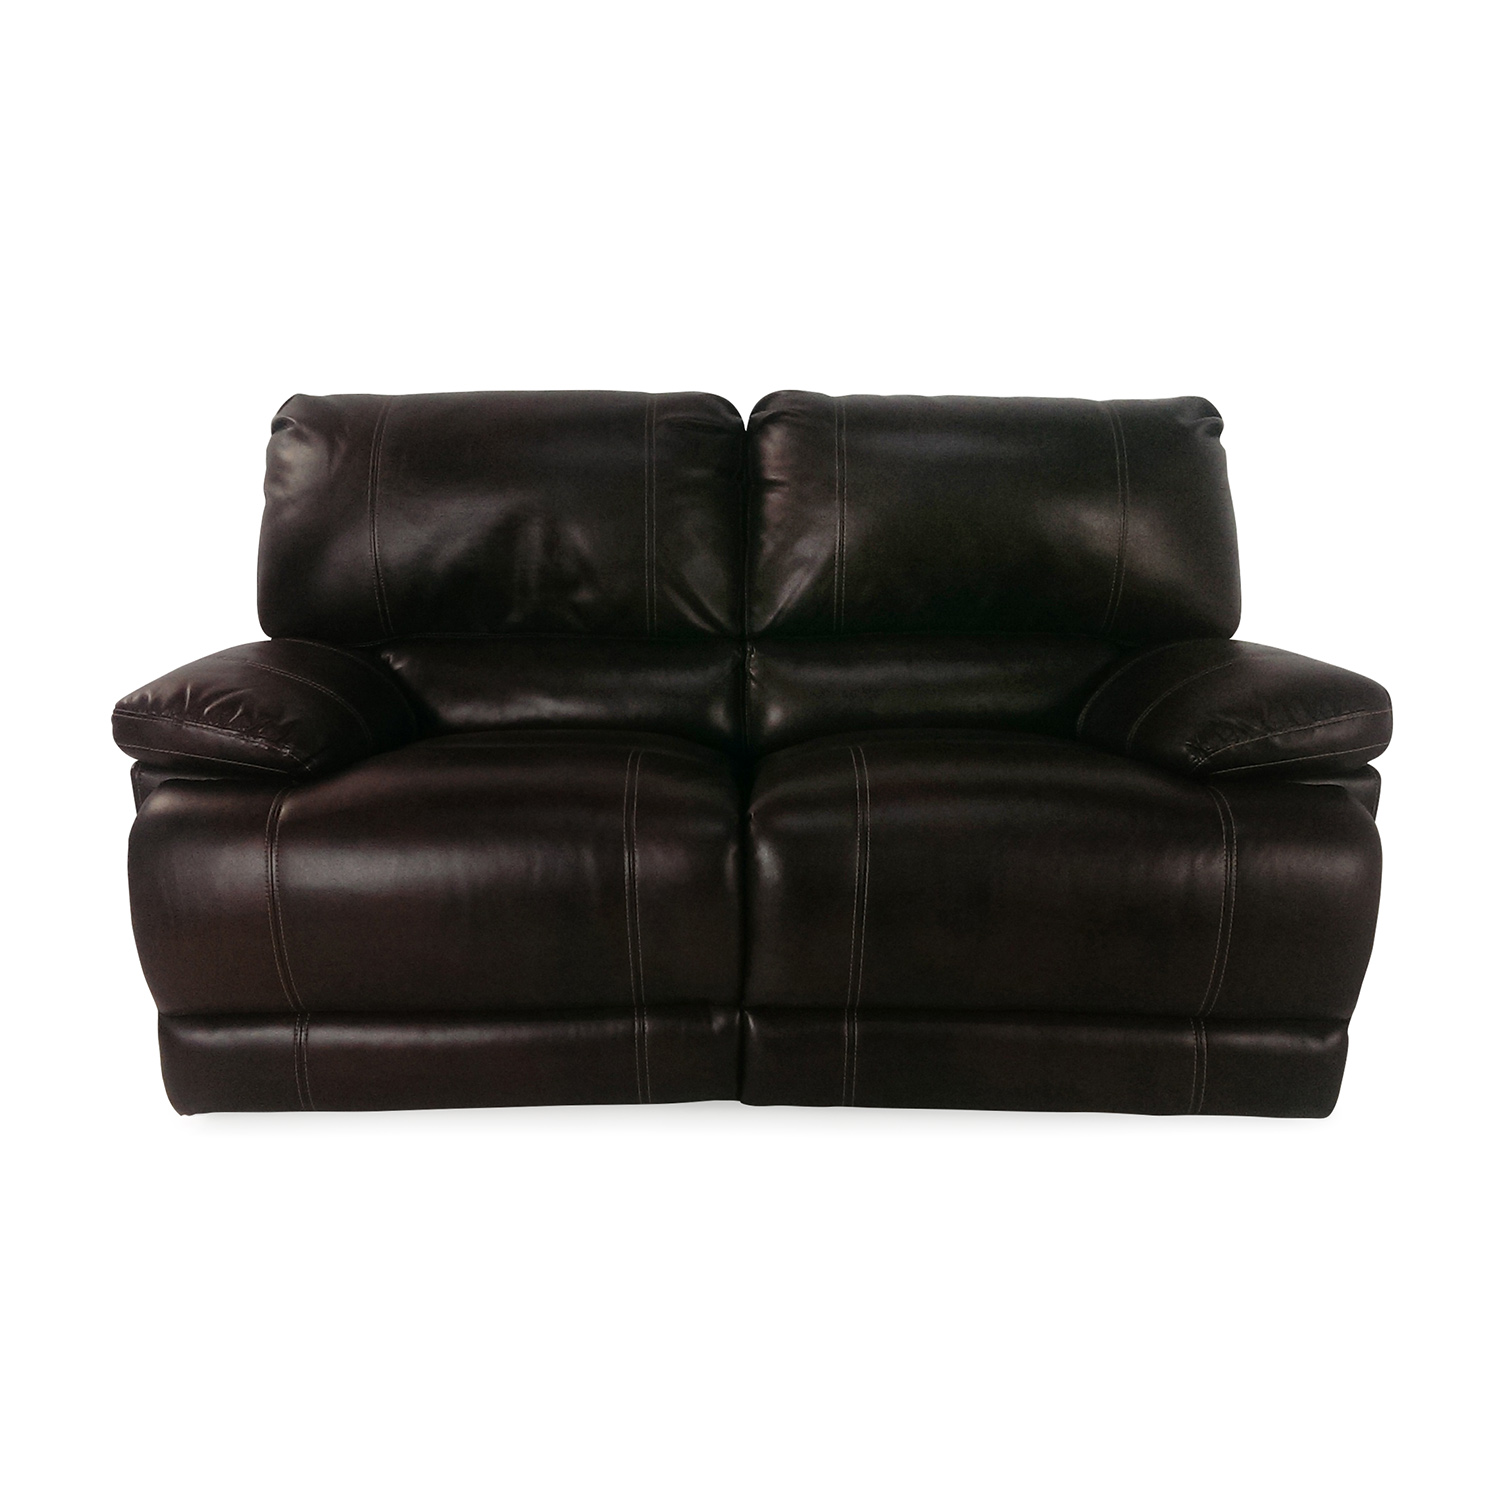 Bobs Furniture Bobs Furniture Reclining Loveseat dimensions